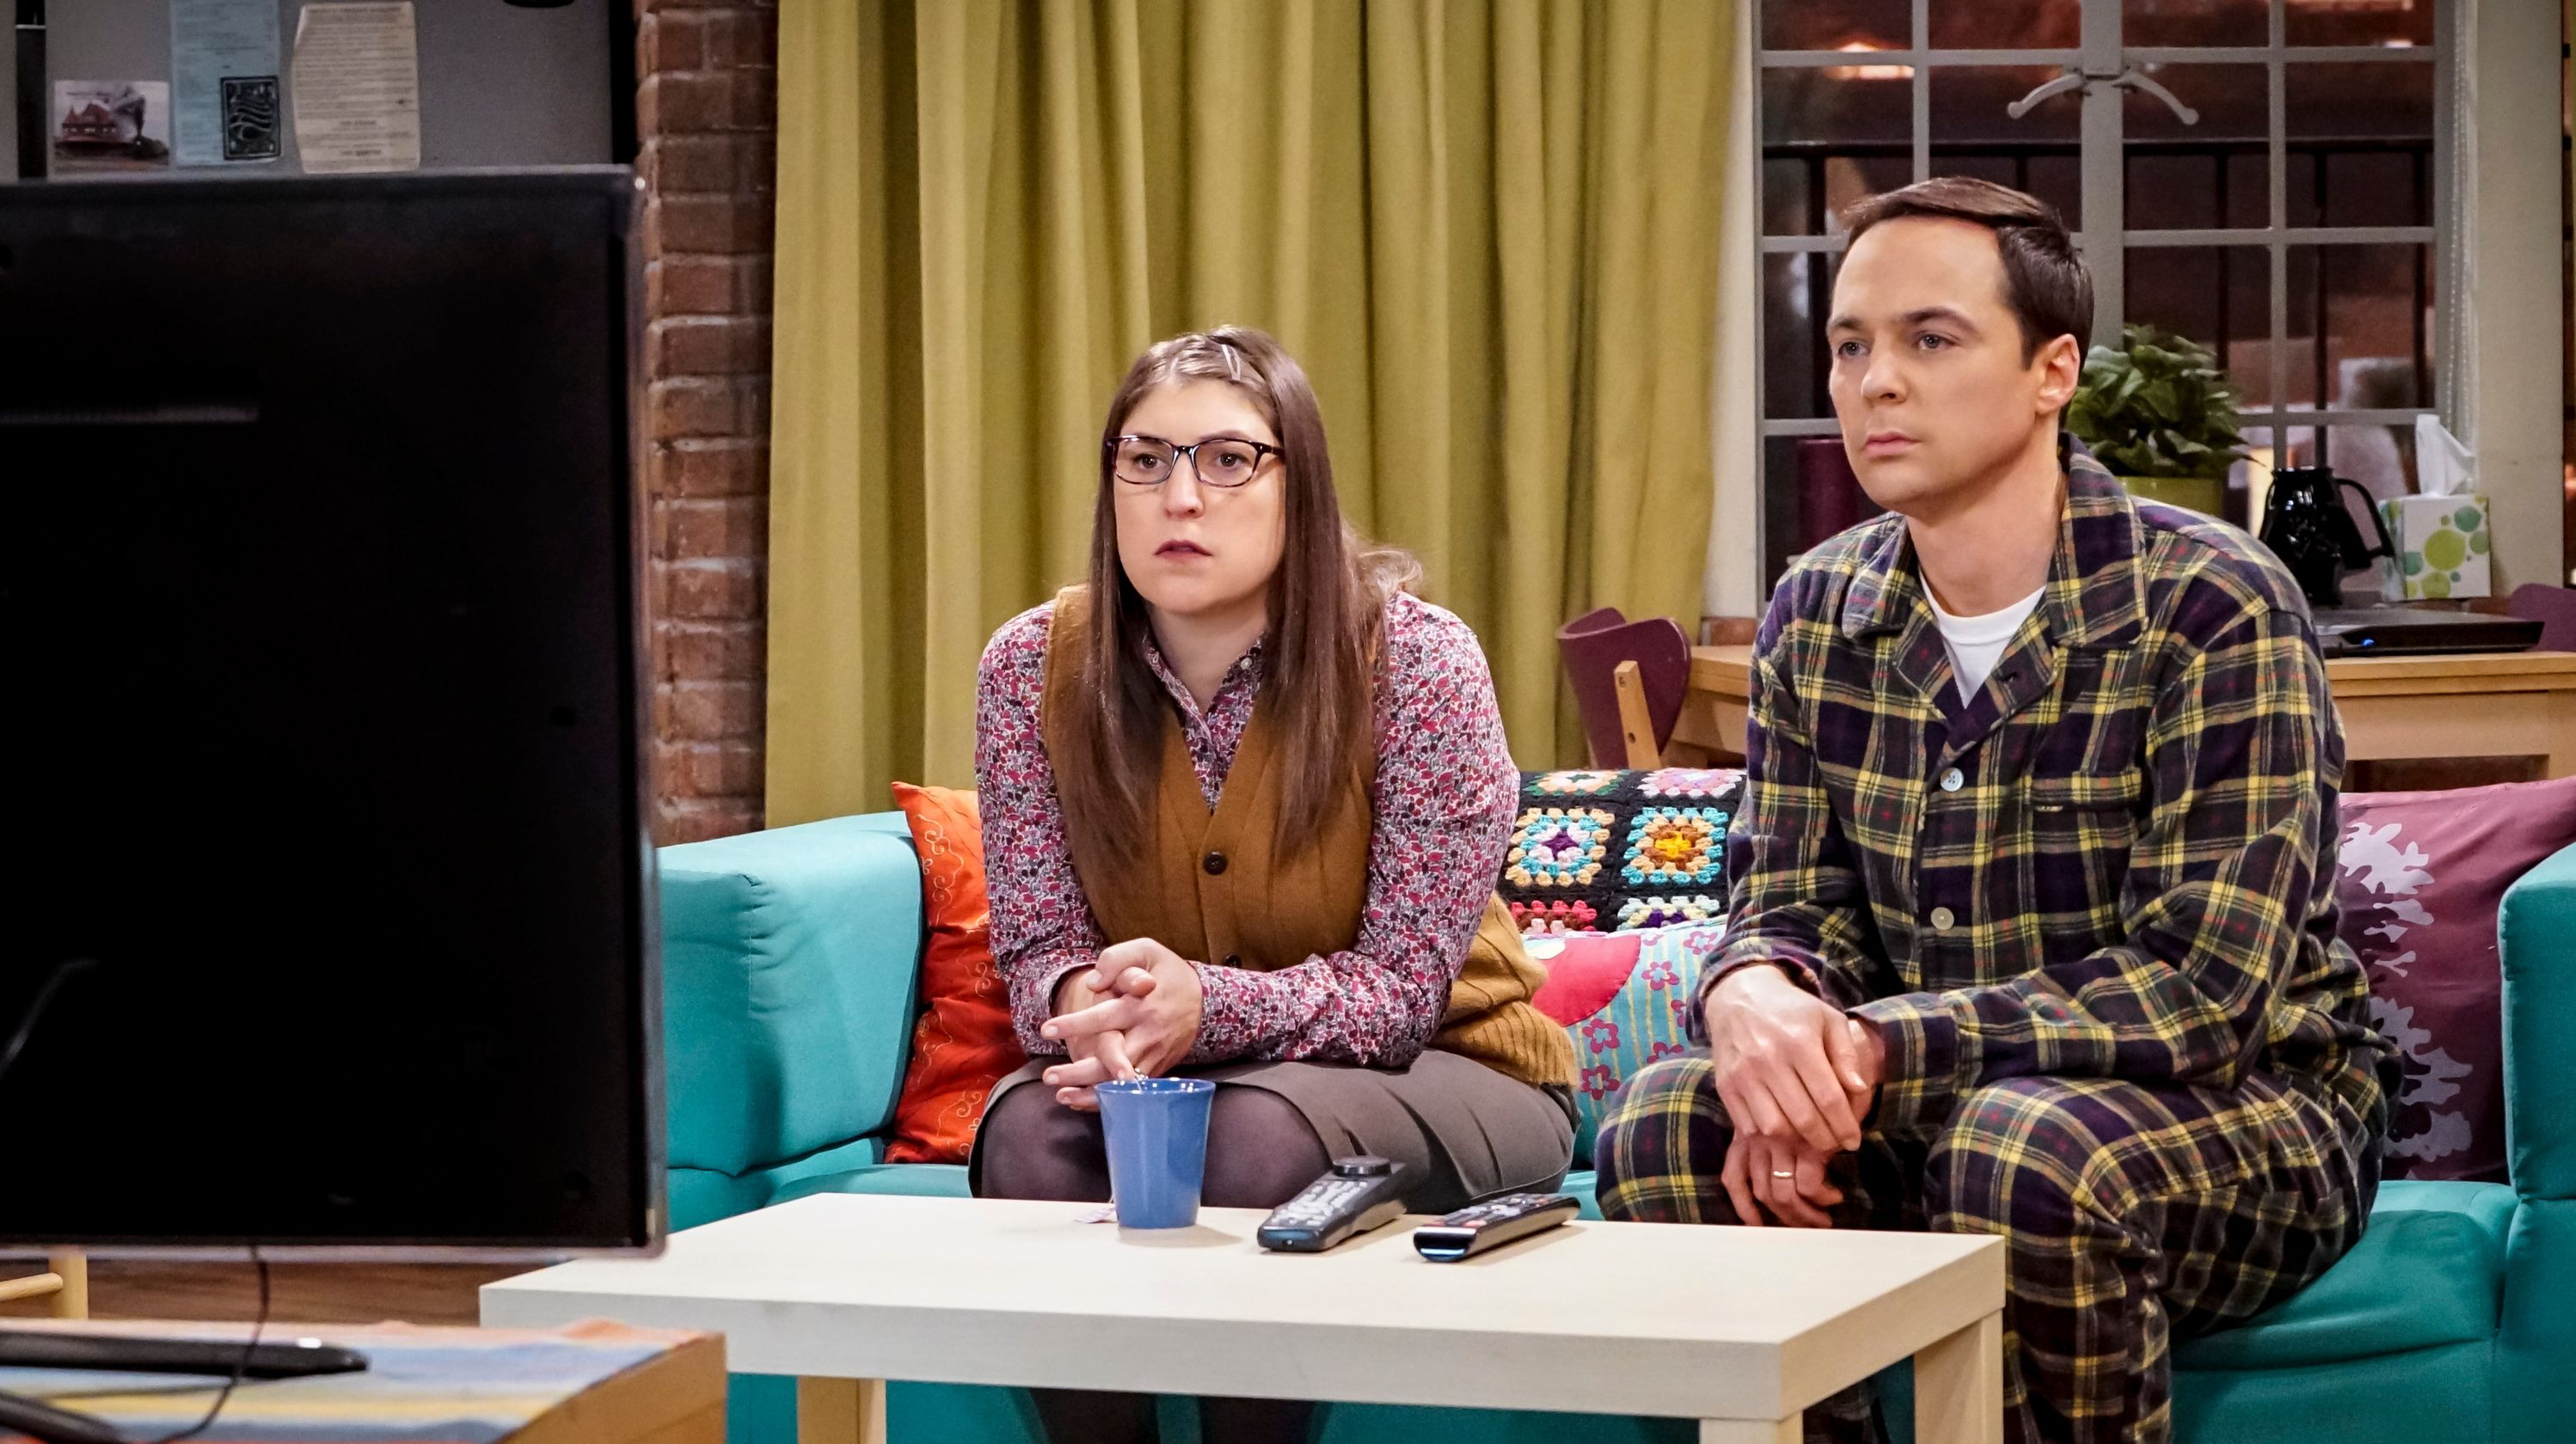 'Big Bang Theory' exclusive: Watch Sheldon Cooper get advice from his 'Young' self